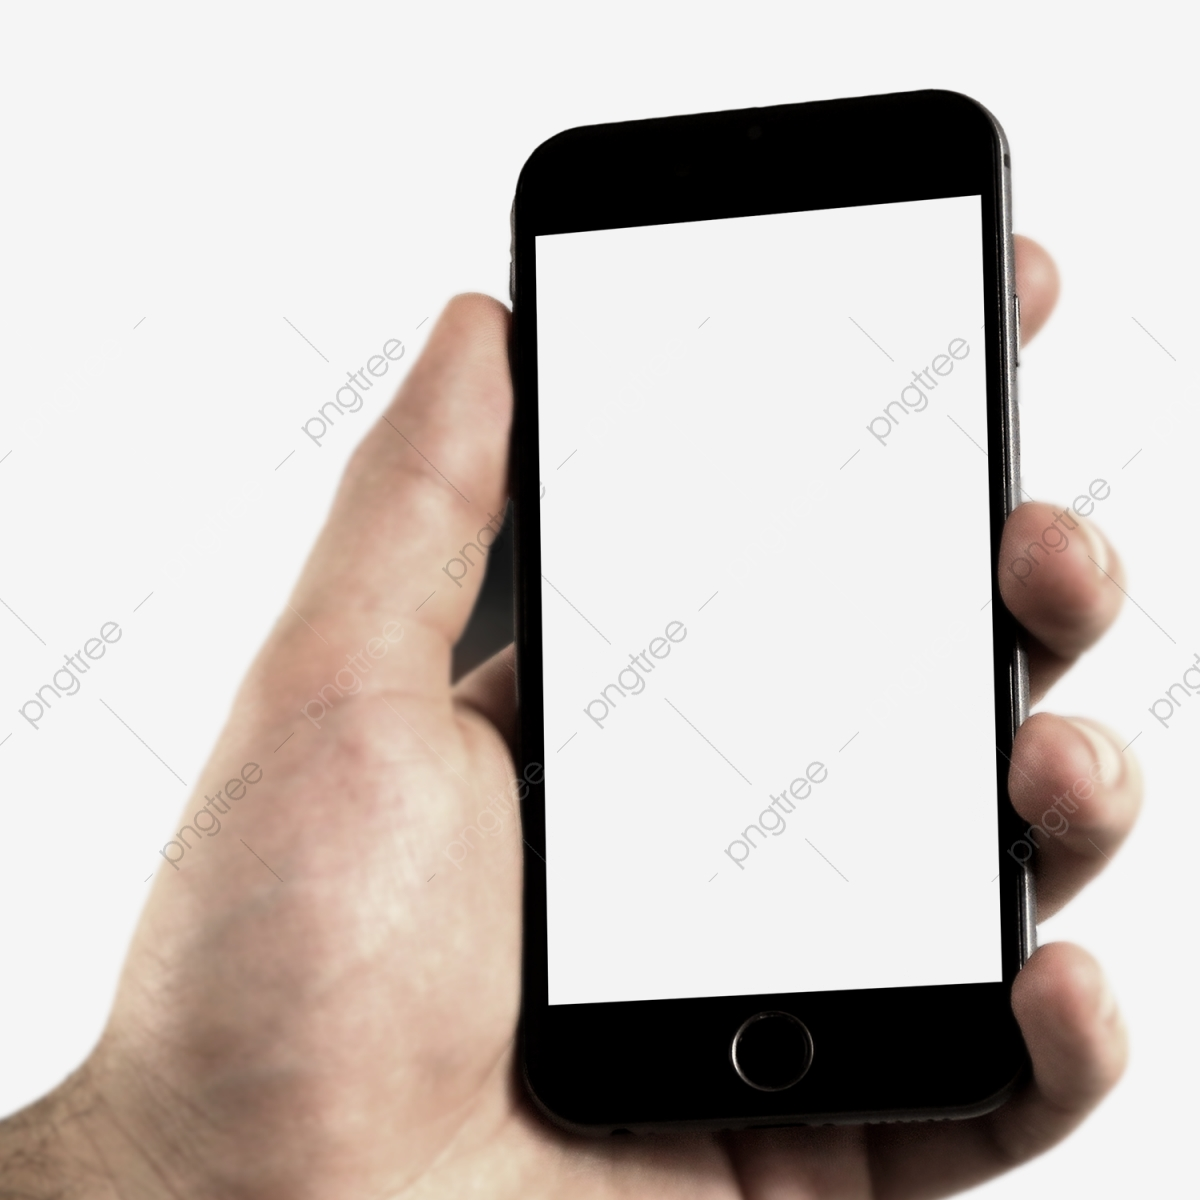 Iphone 8 In Hand Mockup, Mobile, Phone, Replenishing PNG Transparent.